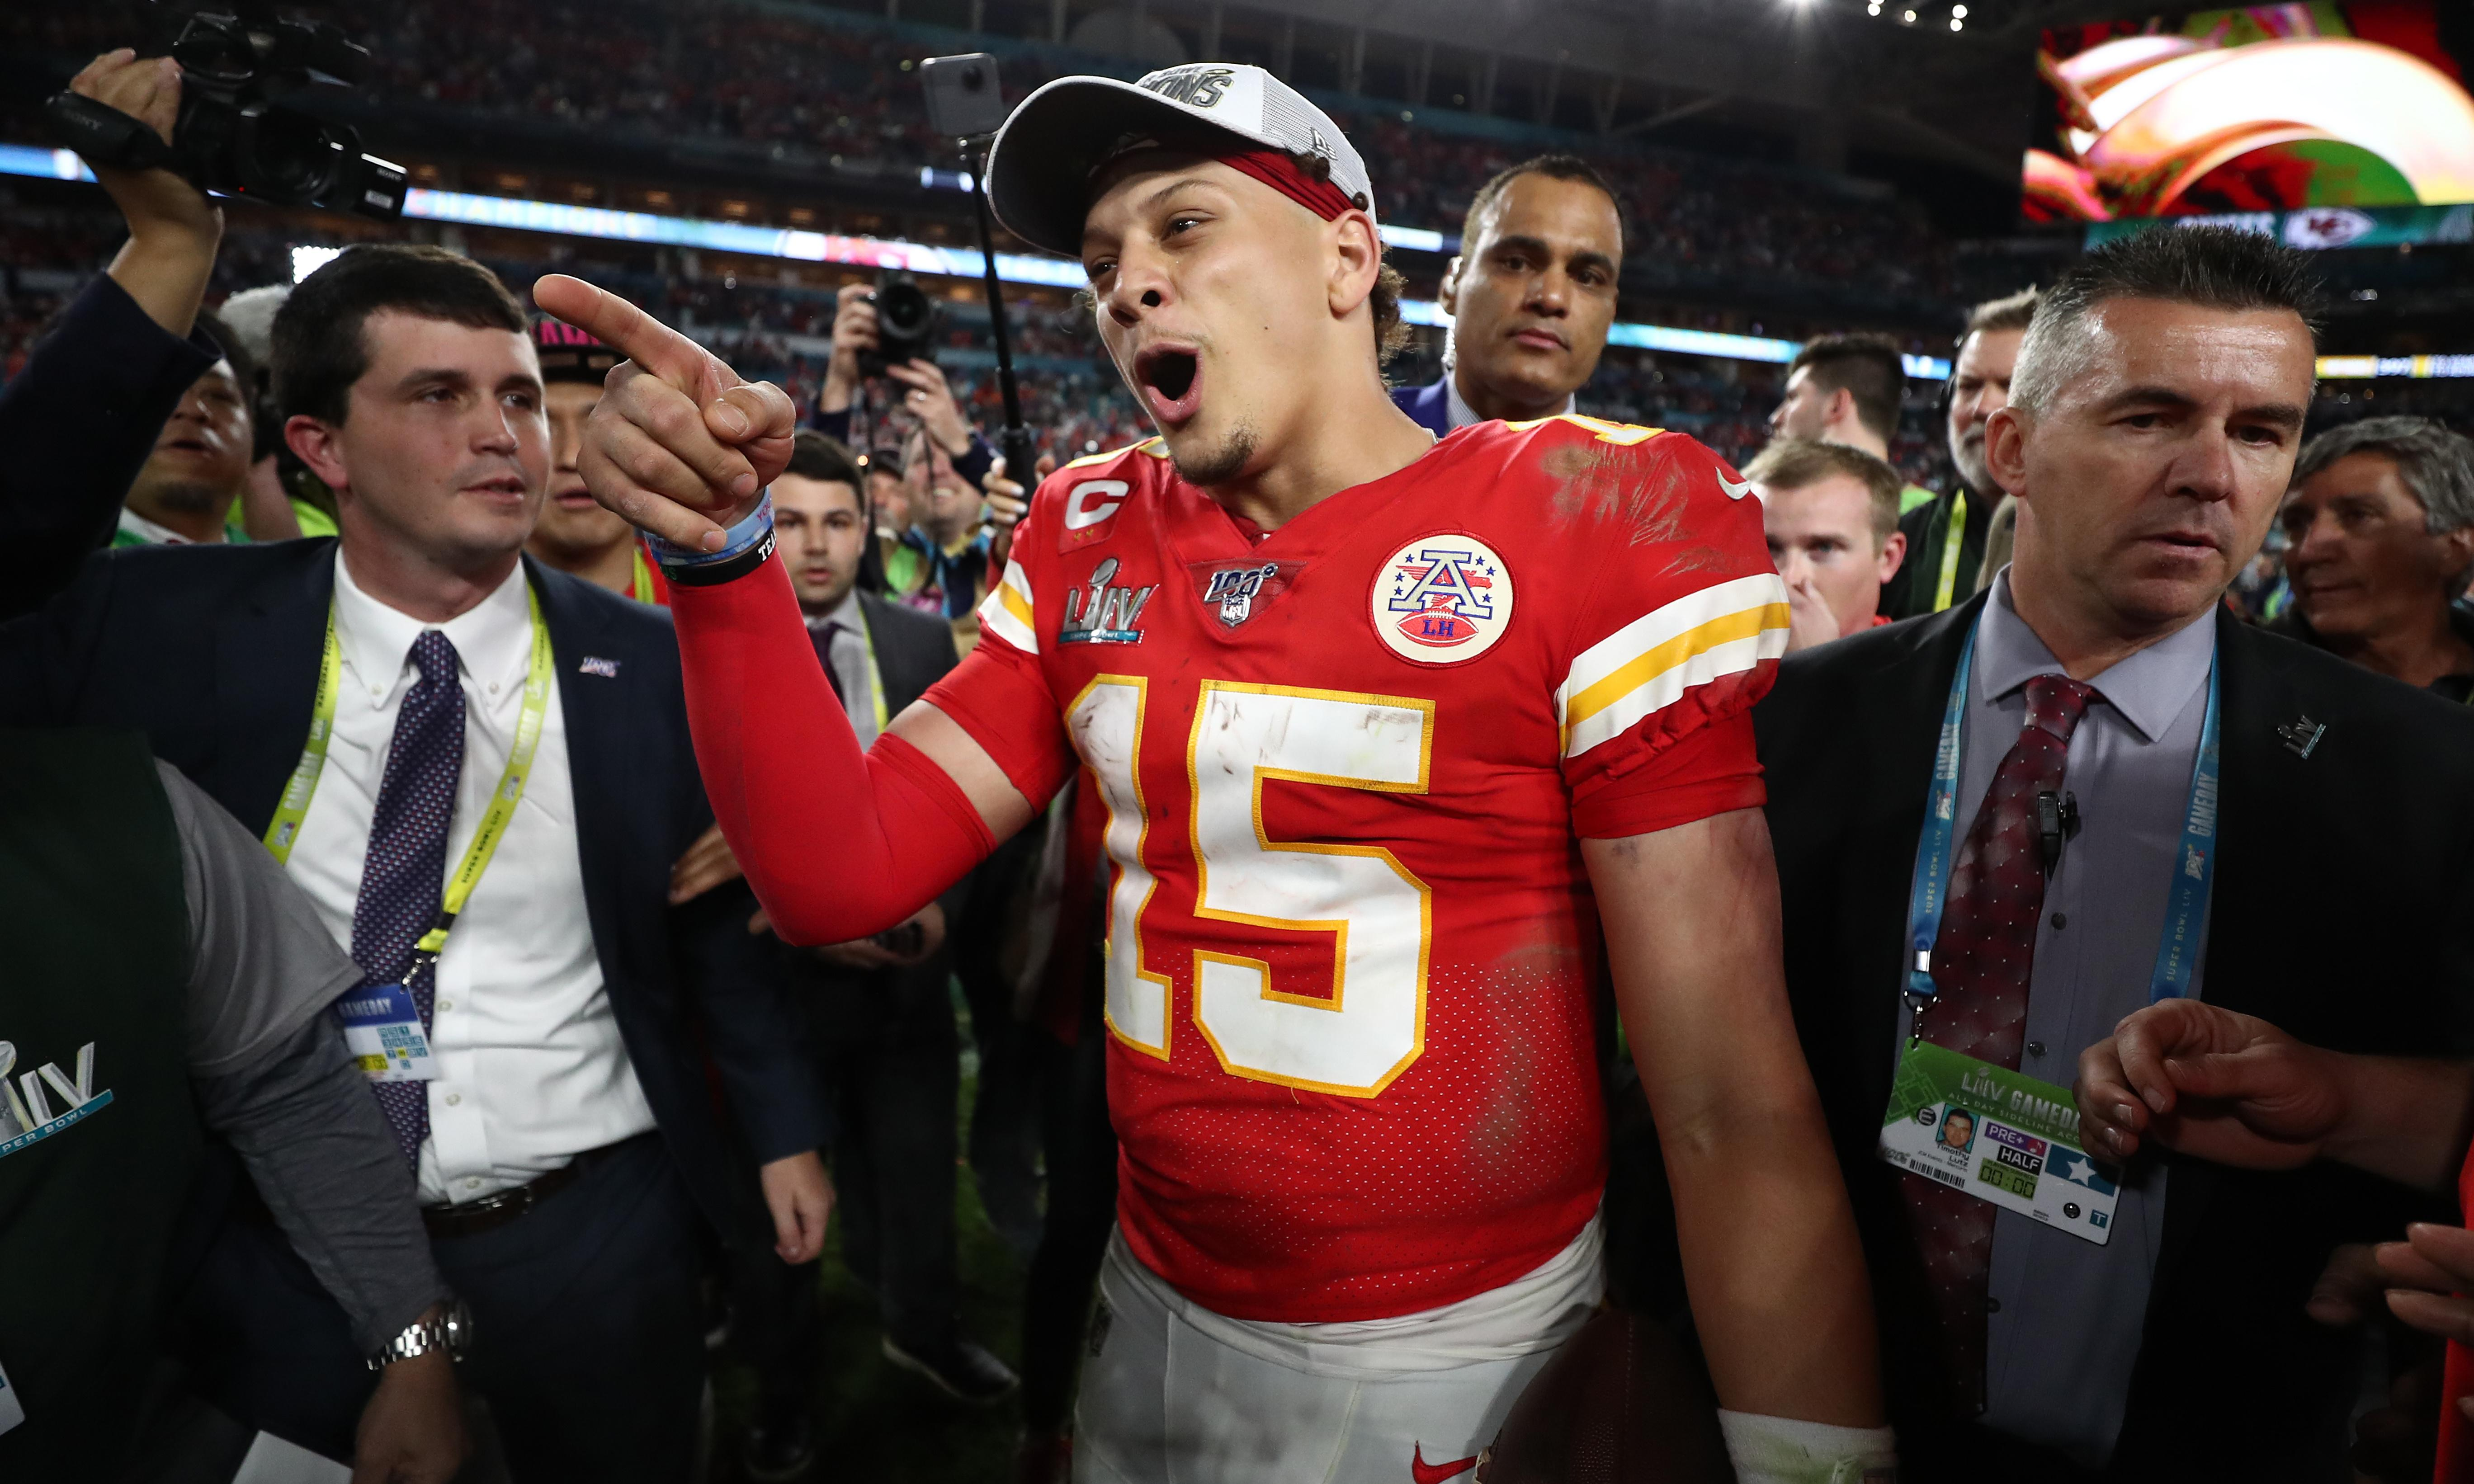 Patrick Mahomes delivered. The only surprise is that we're surprised at all